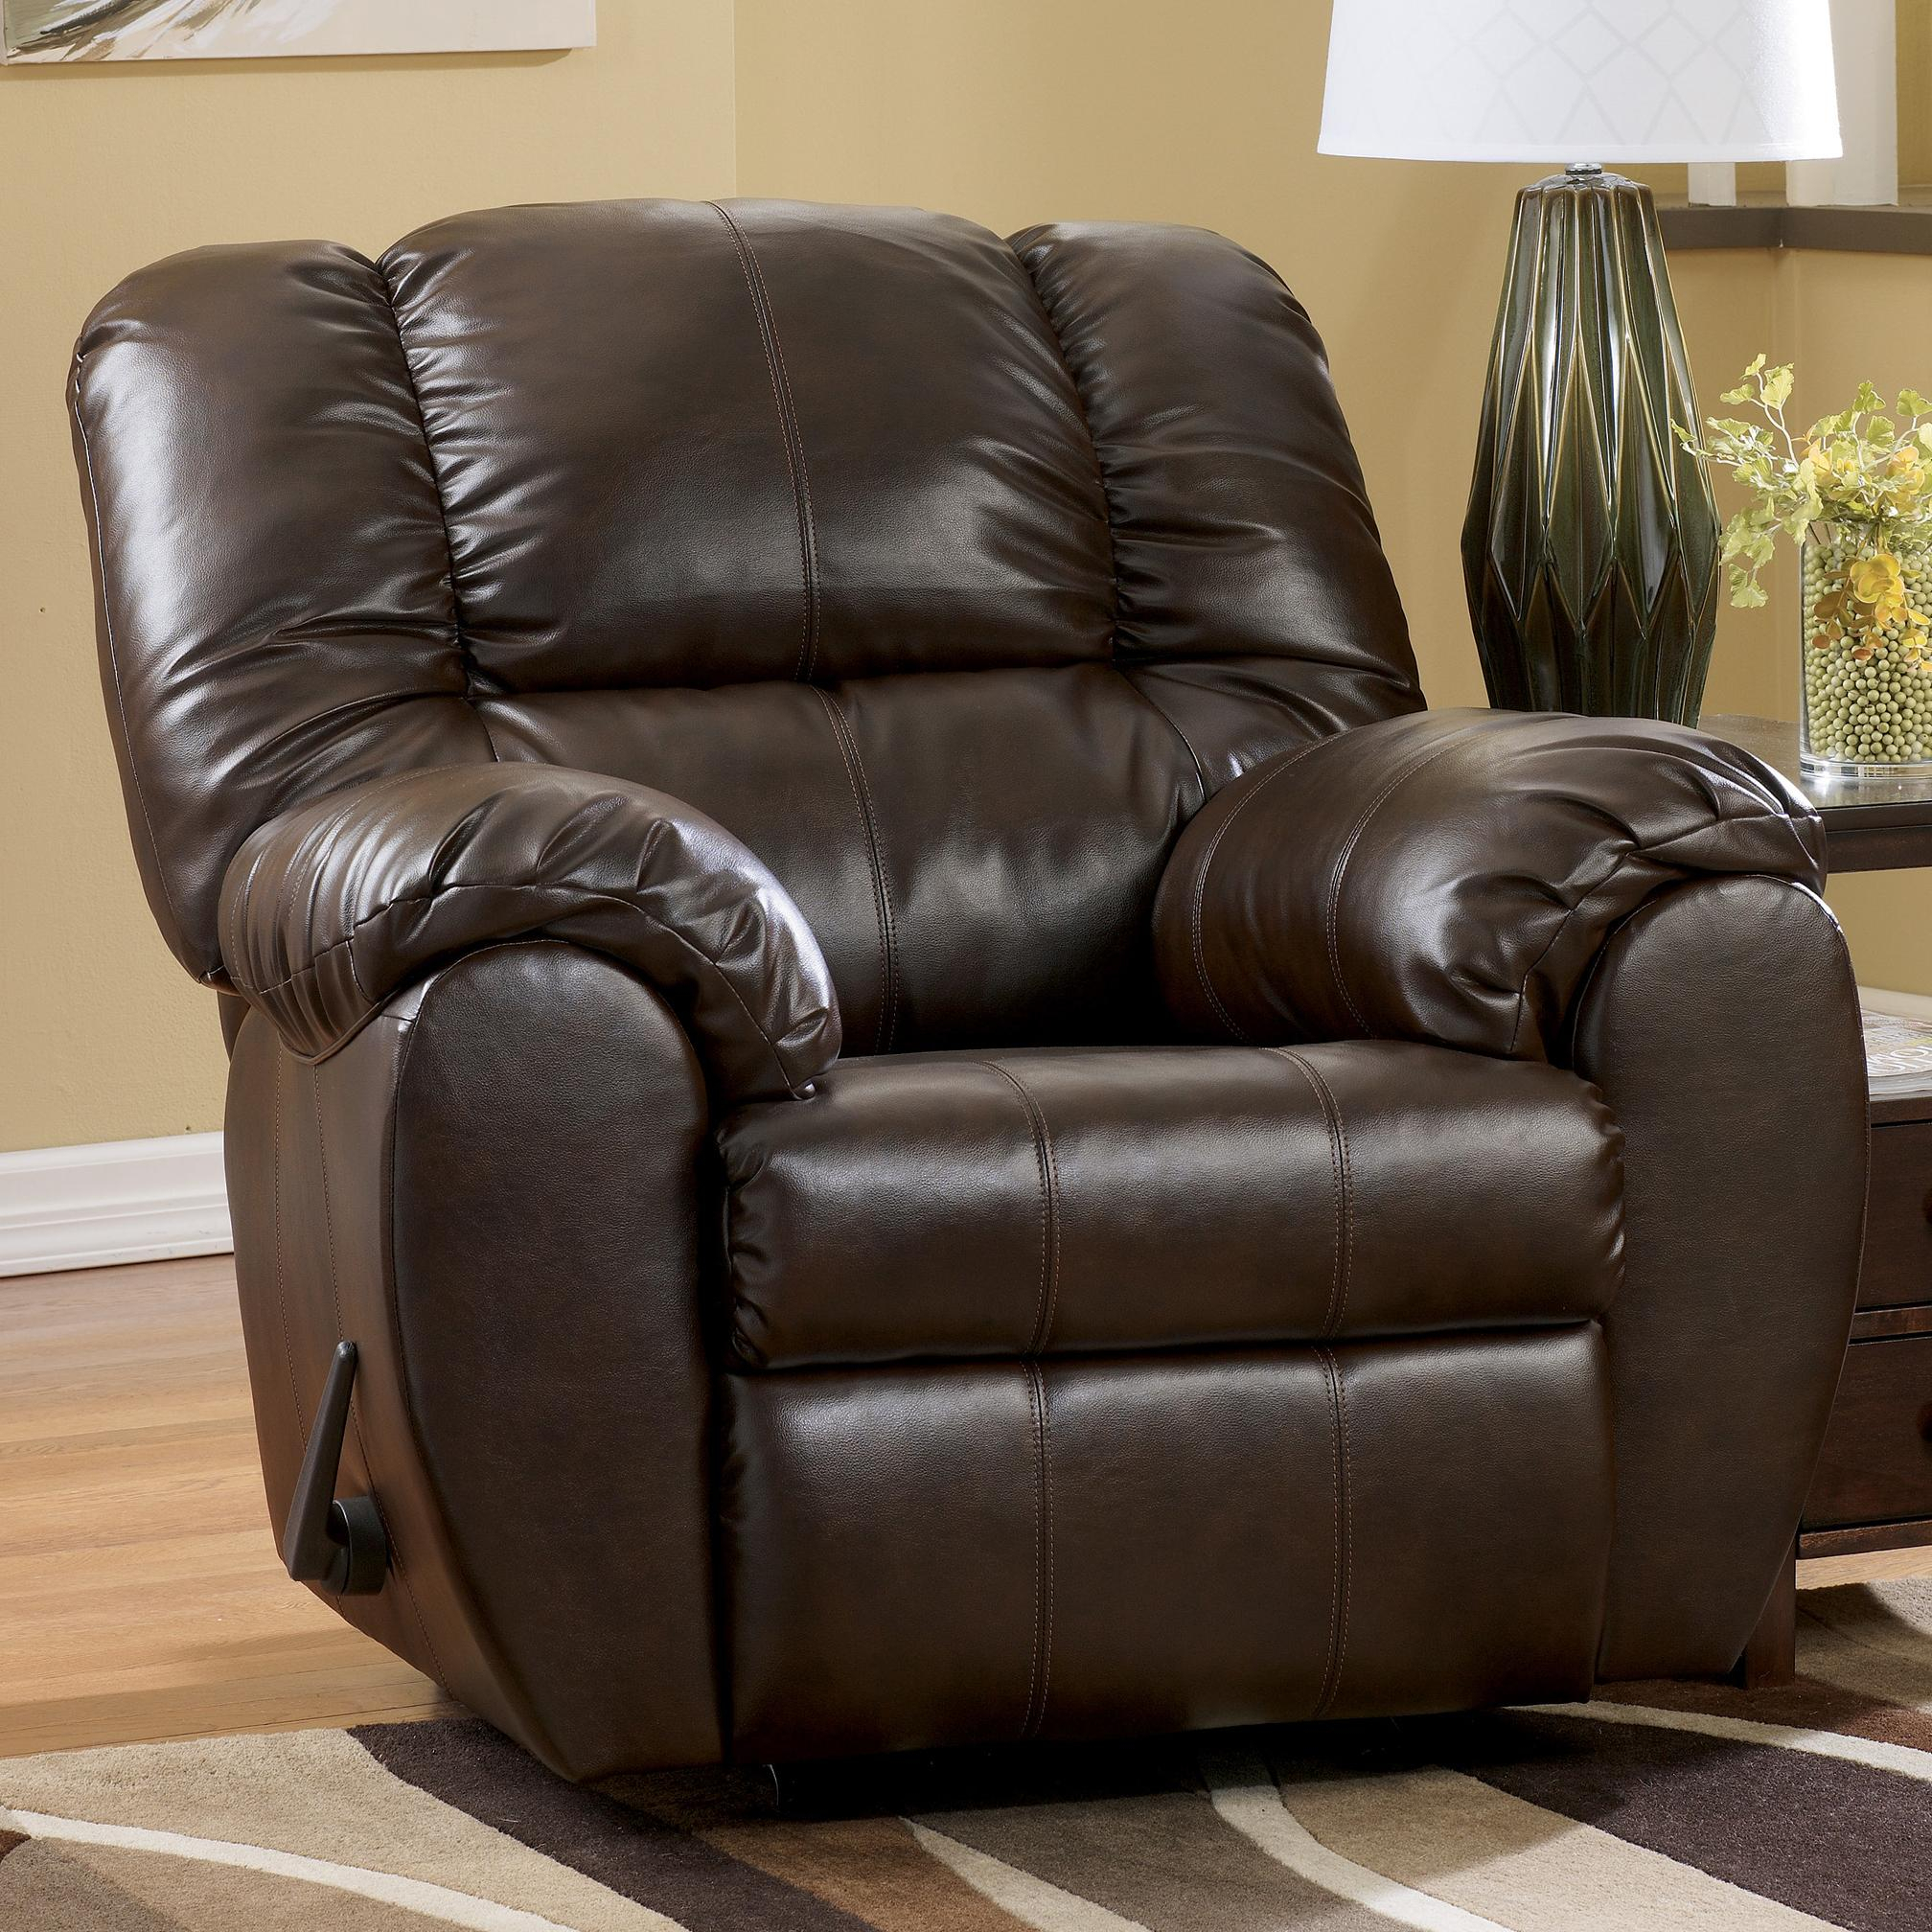 Signature Designashley Dylan Durablend – Espresso Bonded Leather Pertaining To Mansfield Cocoa Leather Sofa Chairs (View 15 of 25)